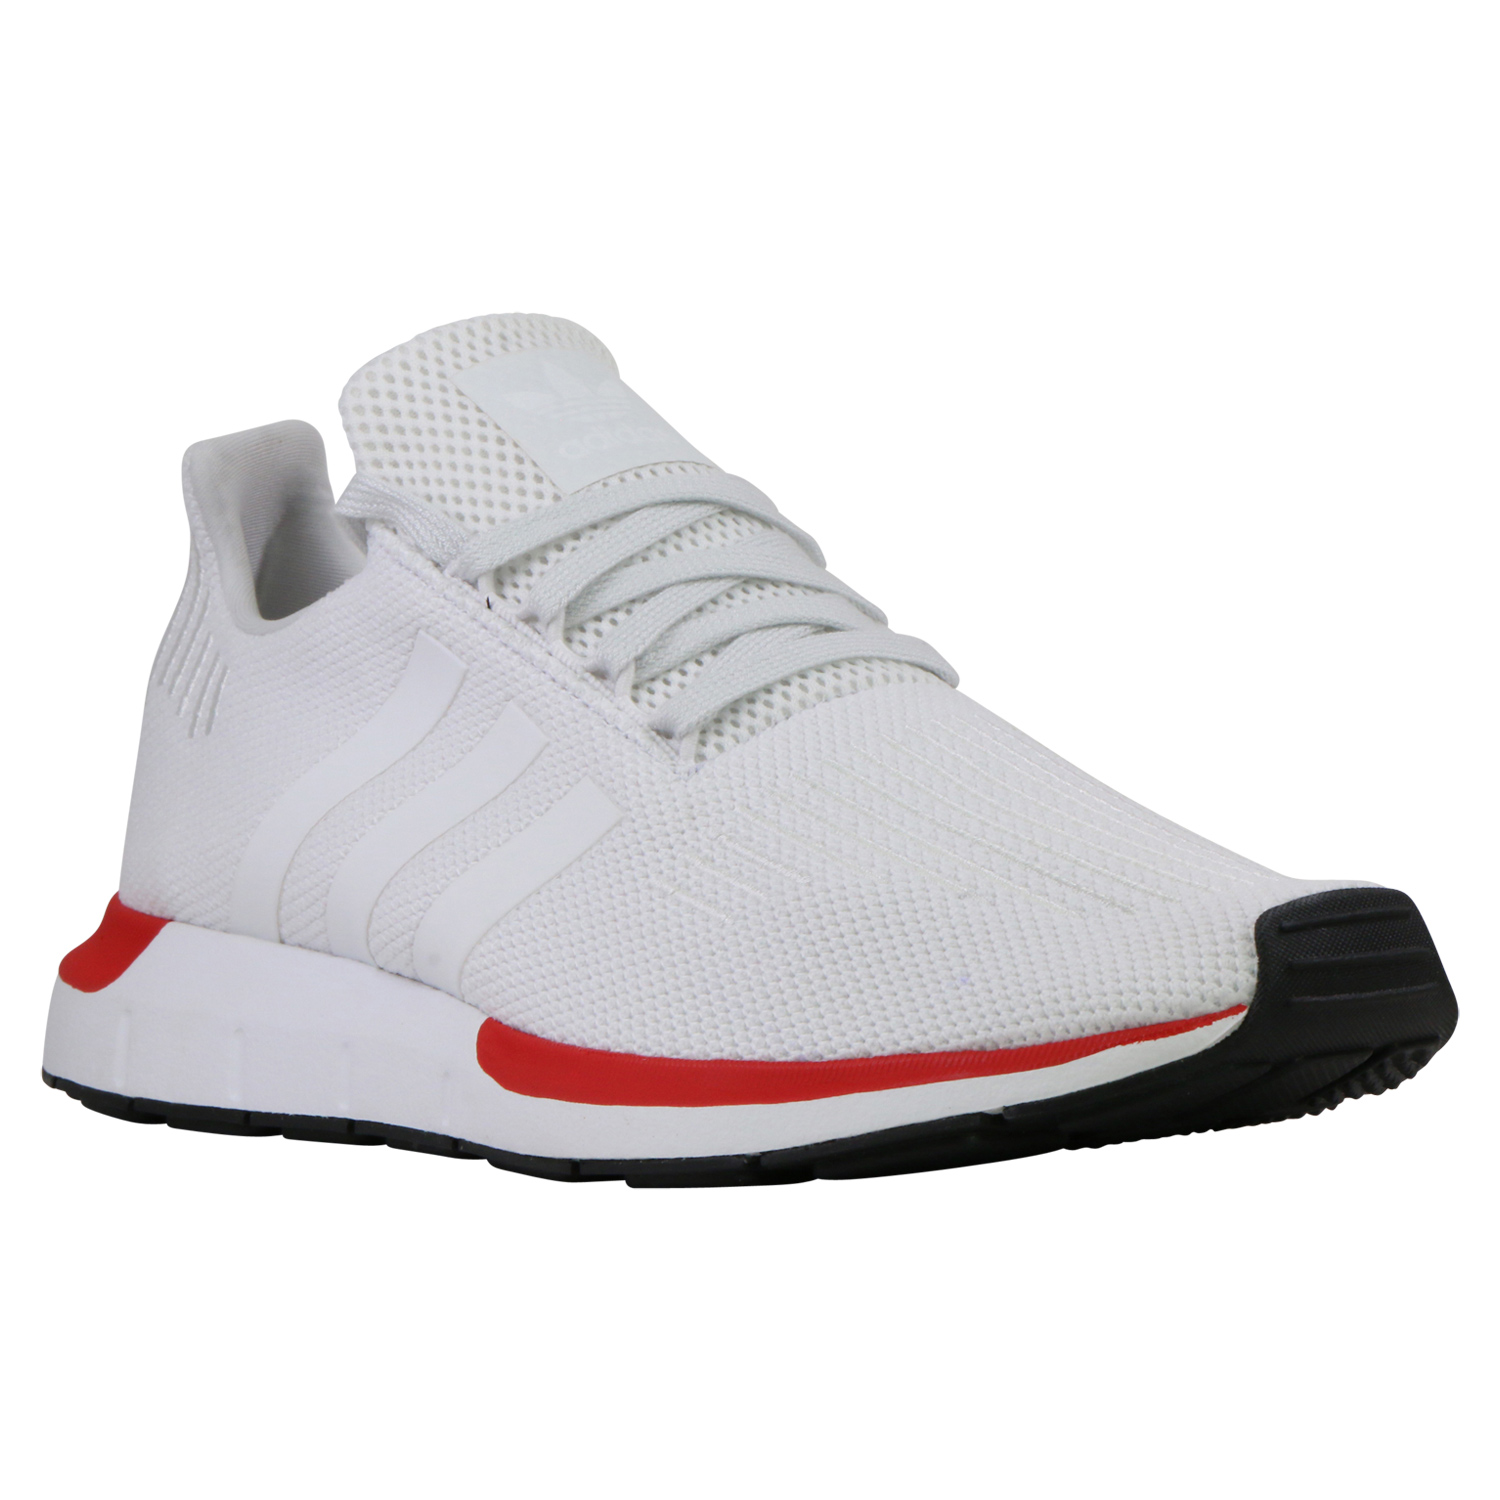 Details zu adidas Originals Swift Run Sneaker Schuhe Herren